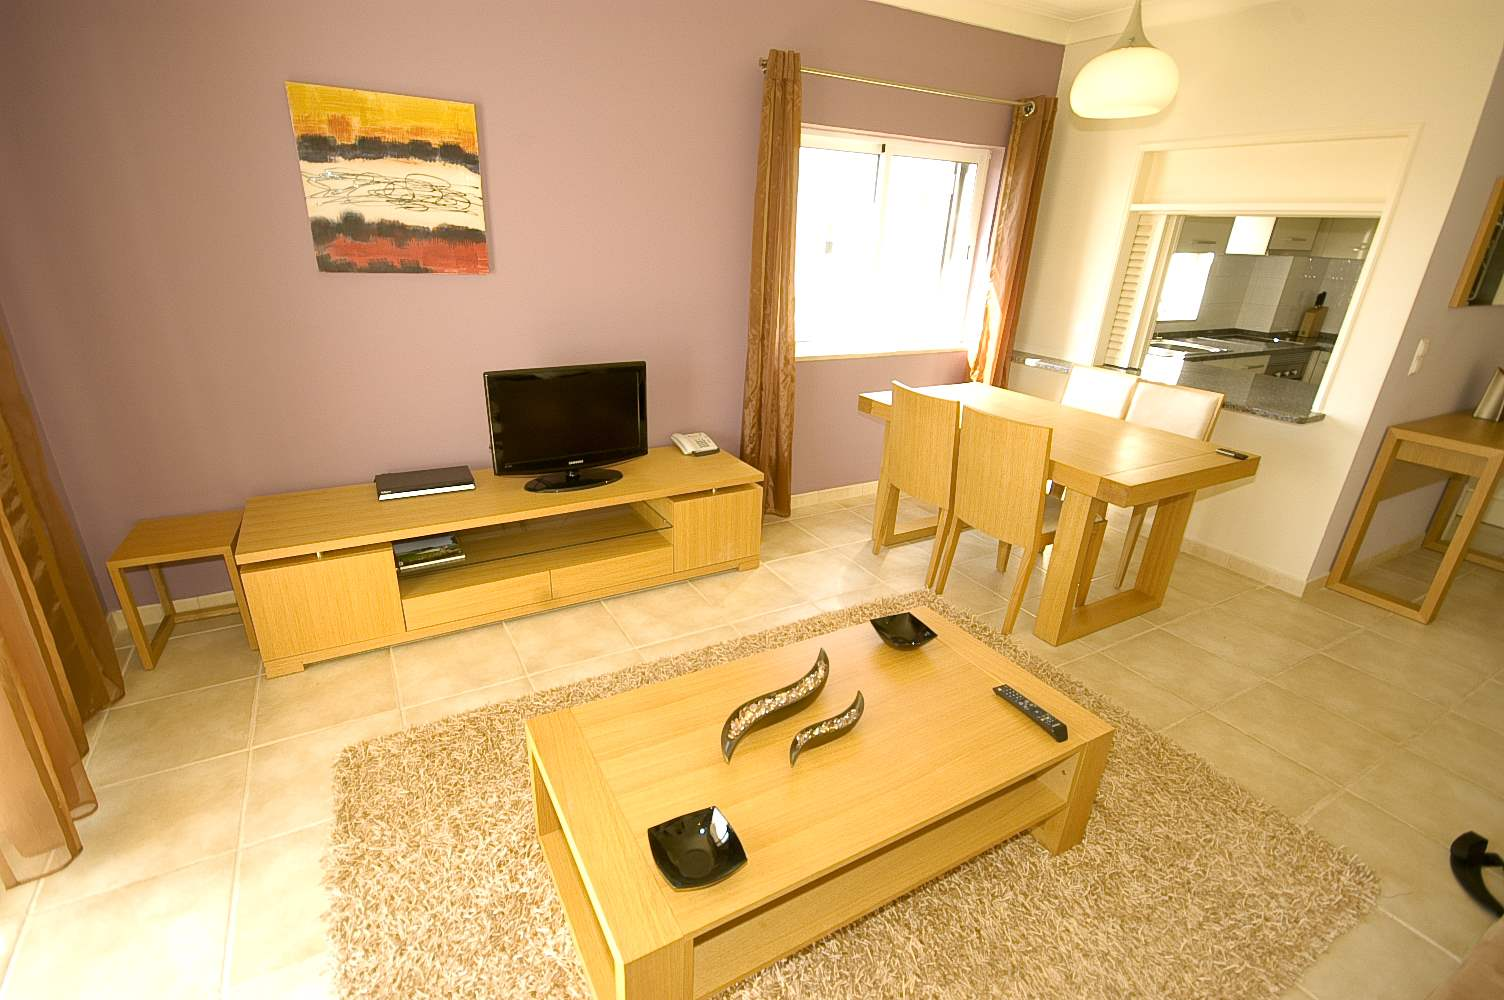 Apartment Azalea 2, 2 bedroom apartment in Vale do Lobo, Algarve Photo #3